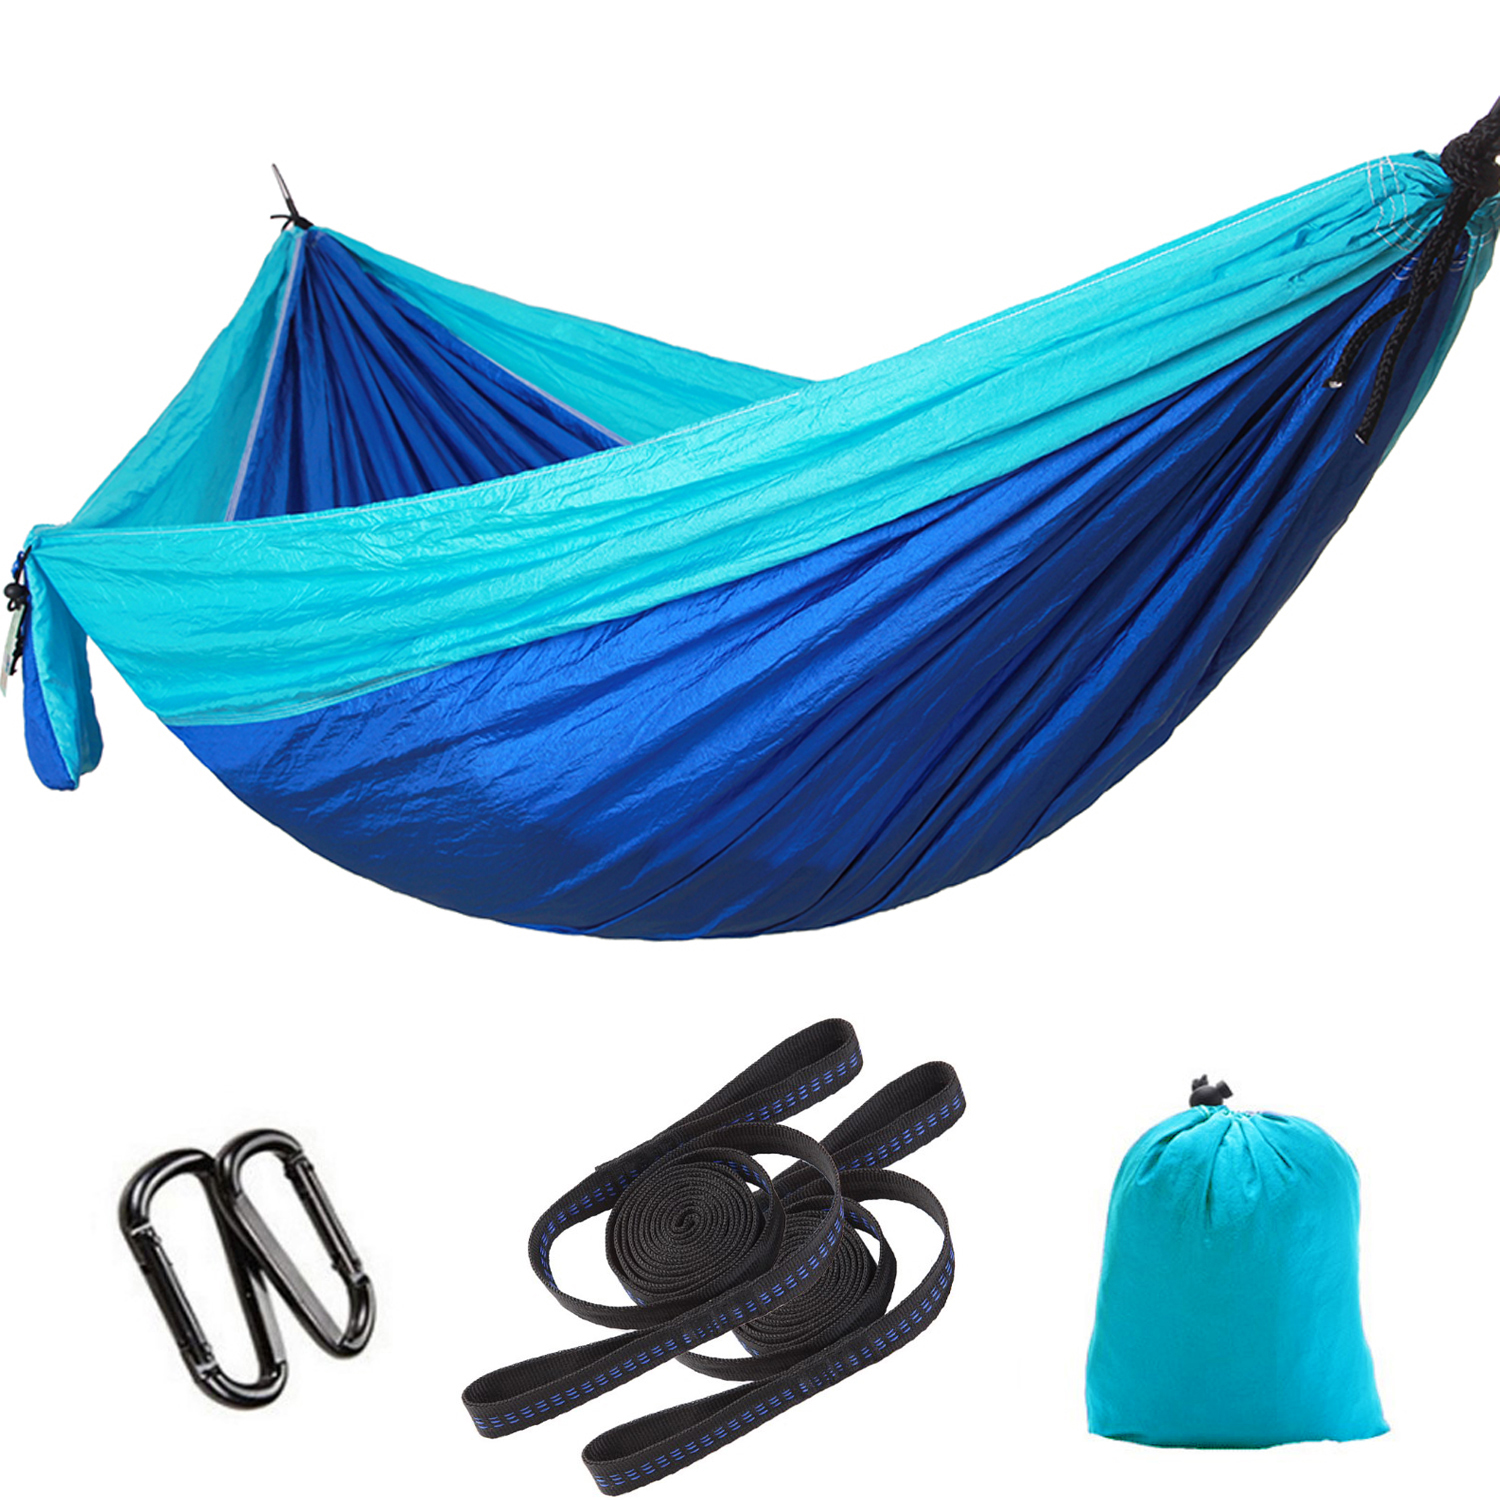 Elegantoss Camping Hammock Double Parachute Portable Including 2 Straps with Loops & Carbines– Best Heavy Duty Lightweight Nylon Parachute Hammock For Camping,Travel,Beach (Black/Red)